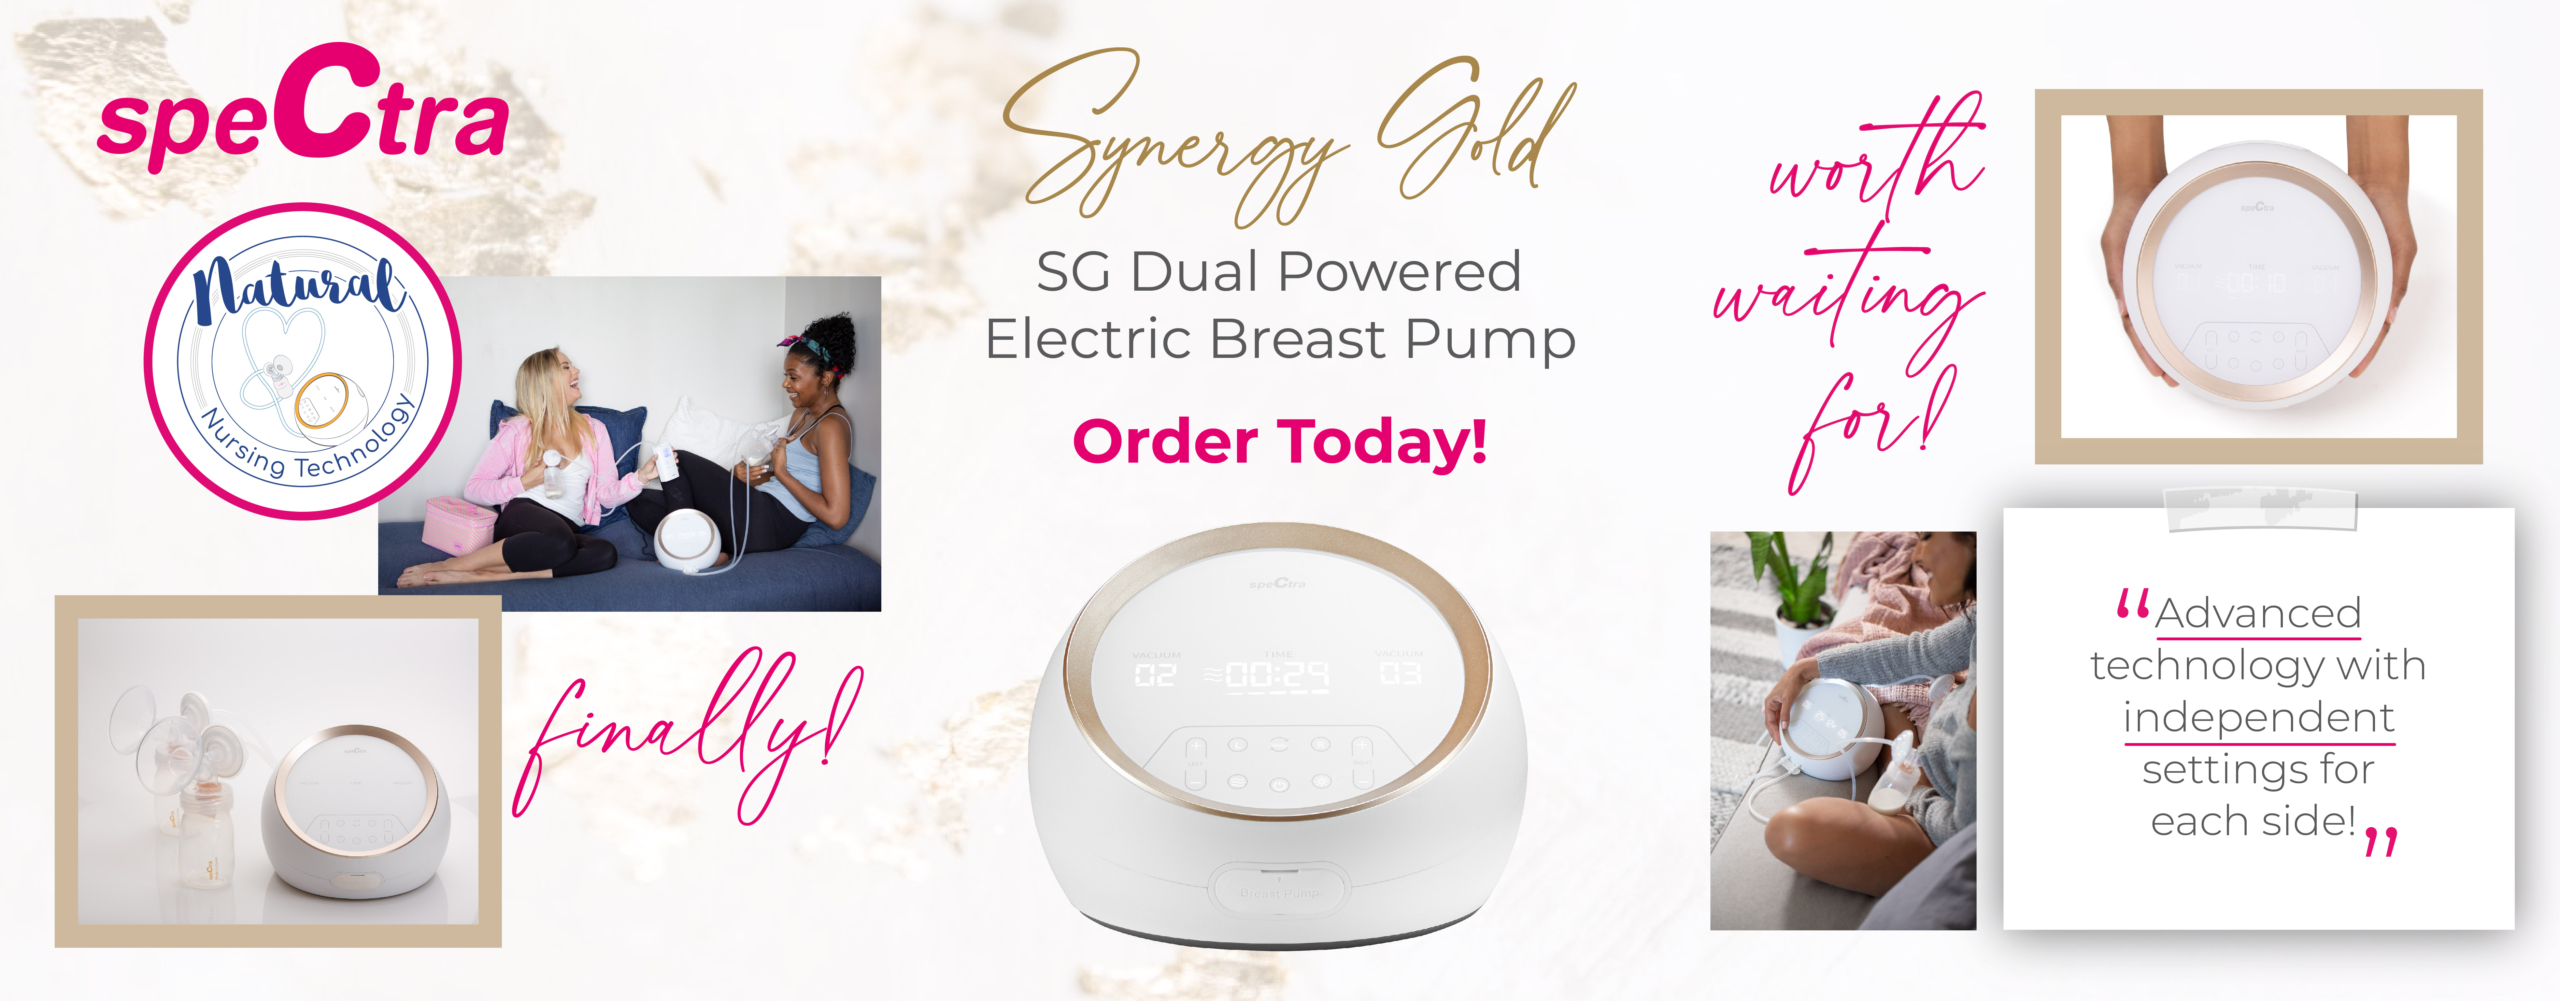 SG Synergy Gold Breast Pump Order Now Banner